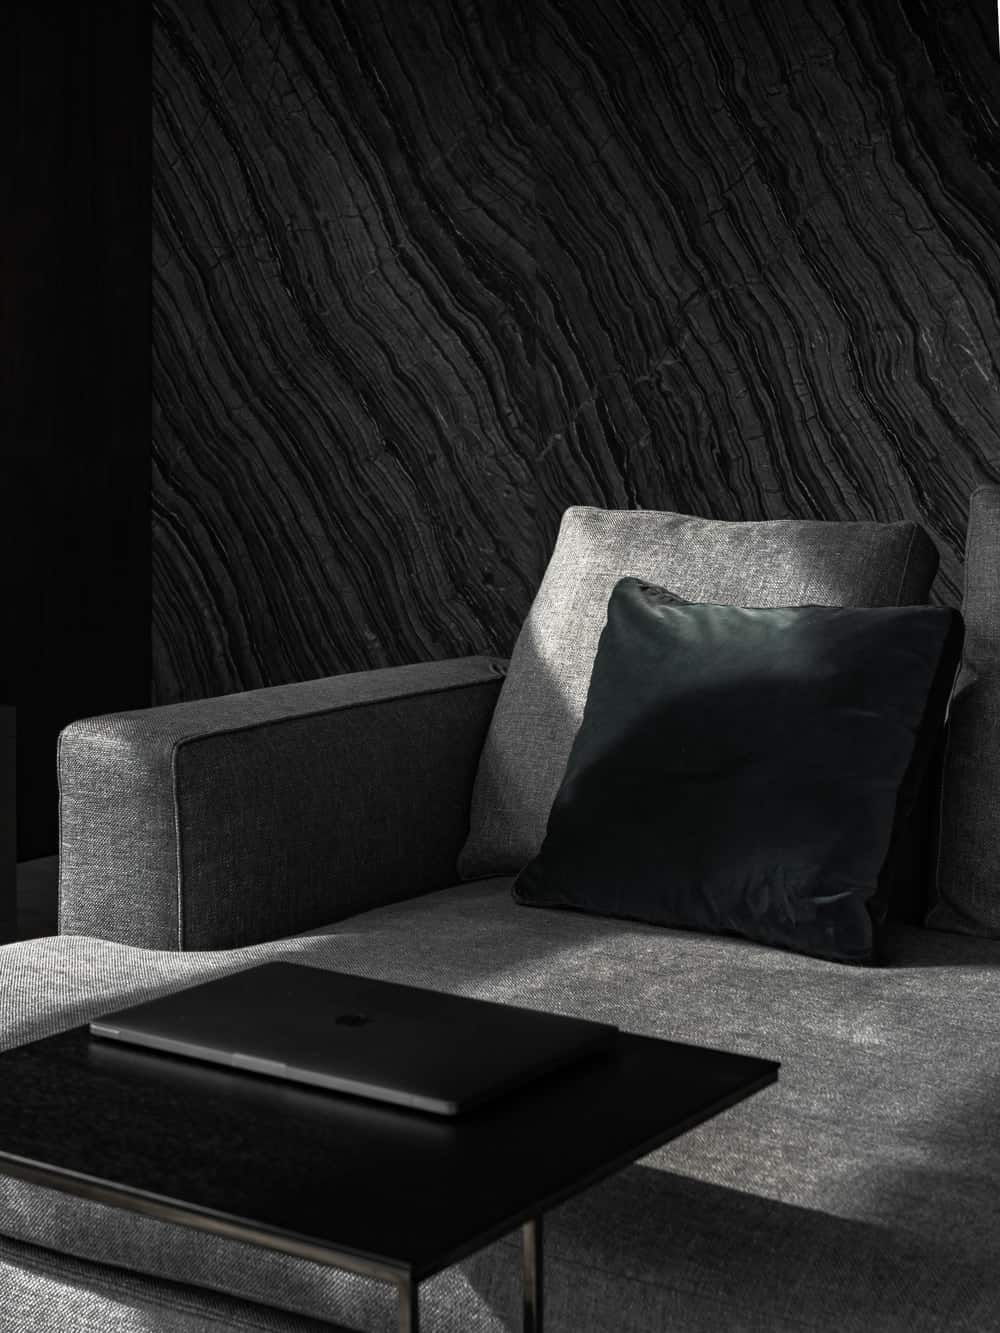 The edge of the sofa is paired with a modern black side table that serves as a desk for the laptop.